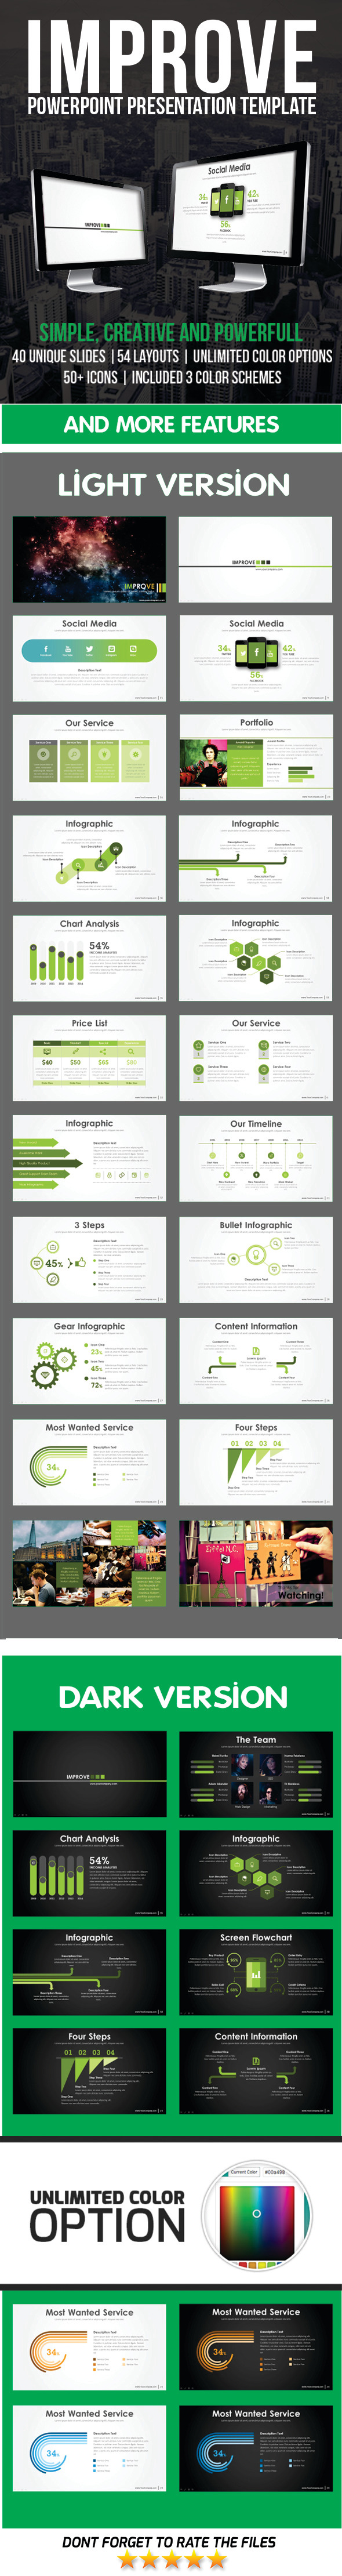 GraphicRiver Improve PowerPoint Template 11628383